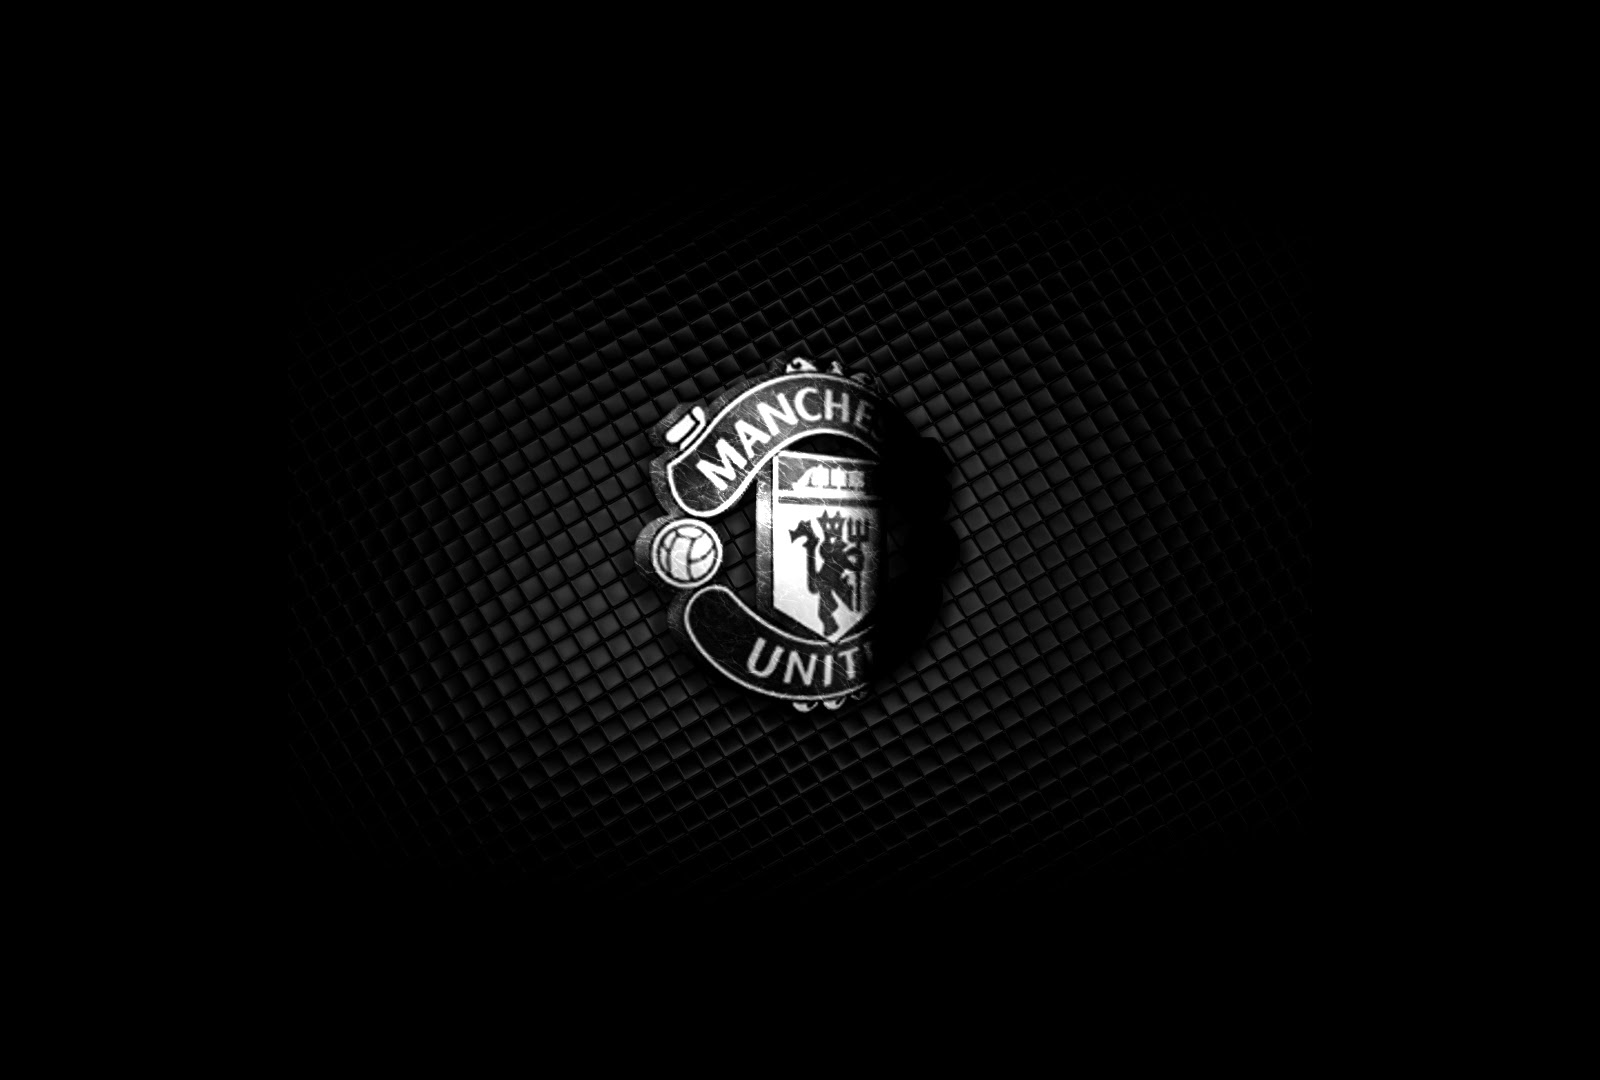 Arsenal Wallpaper For Iphone 6 Manchester United Football Club Wallpaper Football